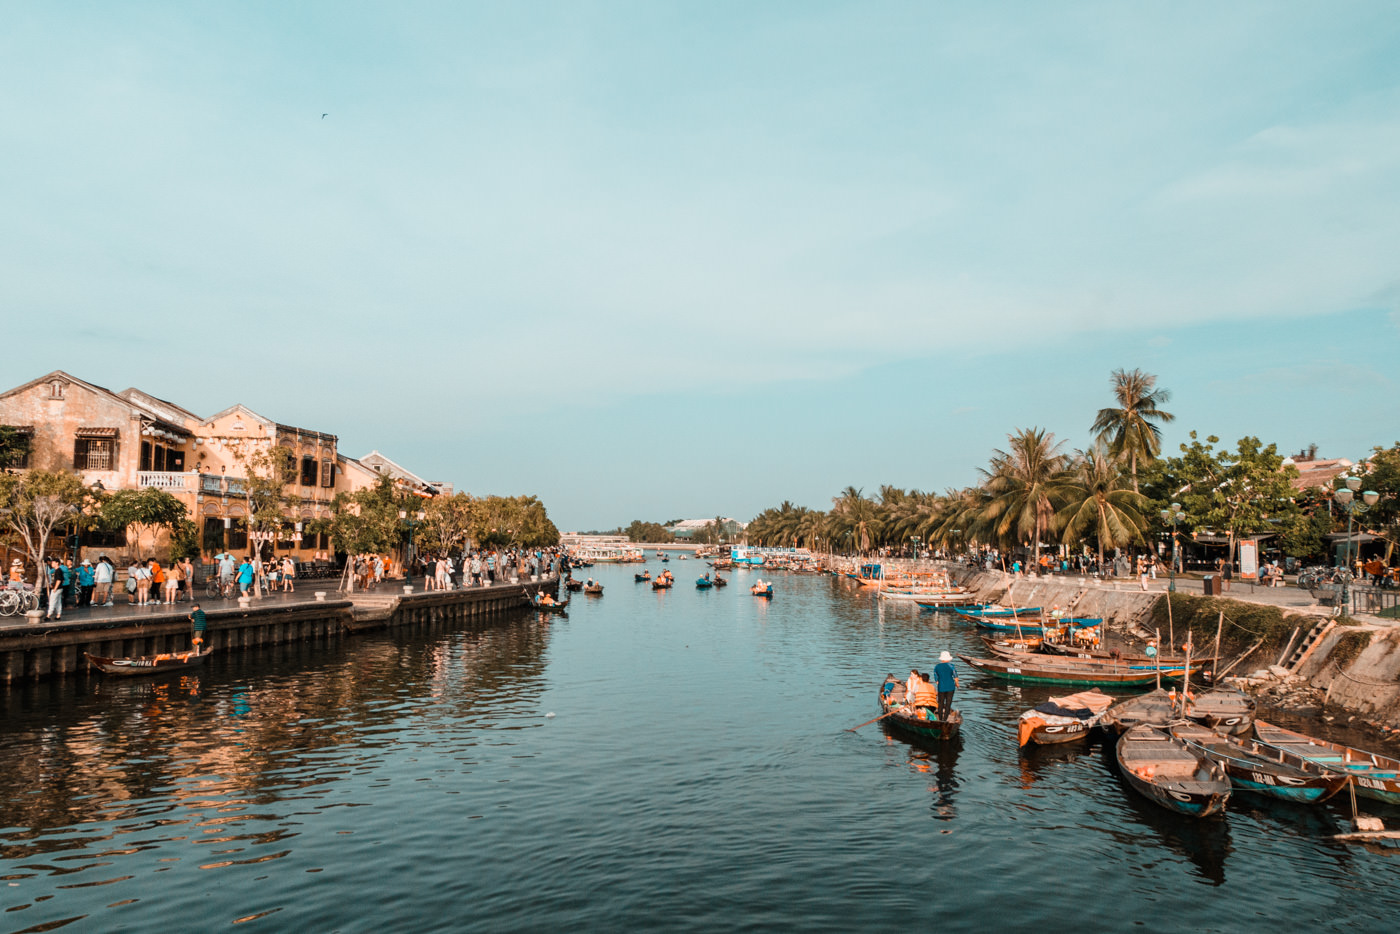 Fluss in Hoi An